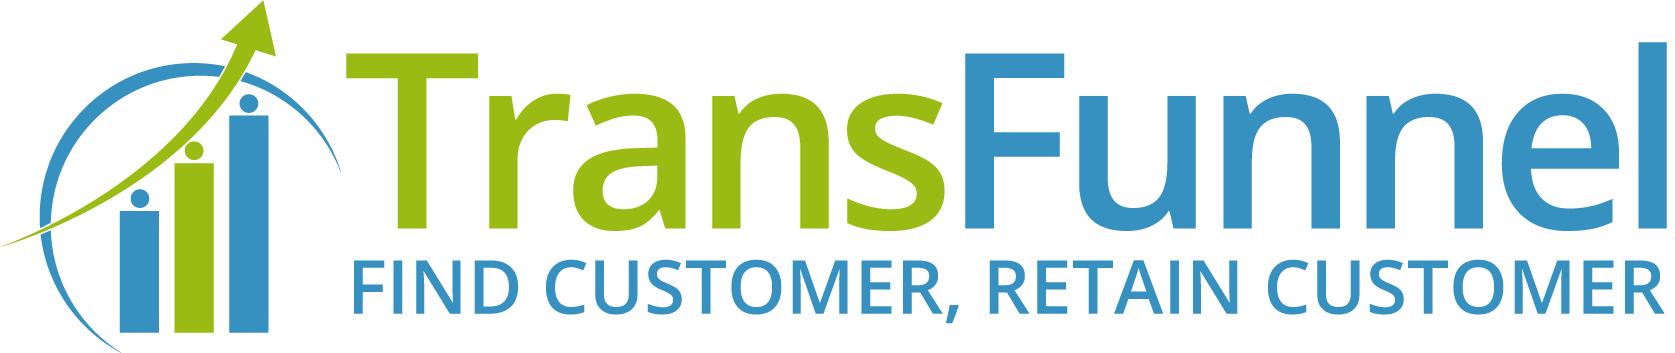 TransFunnel Consulting Team